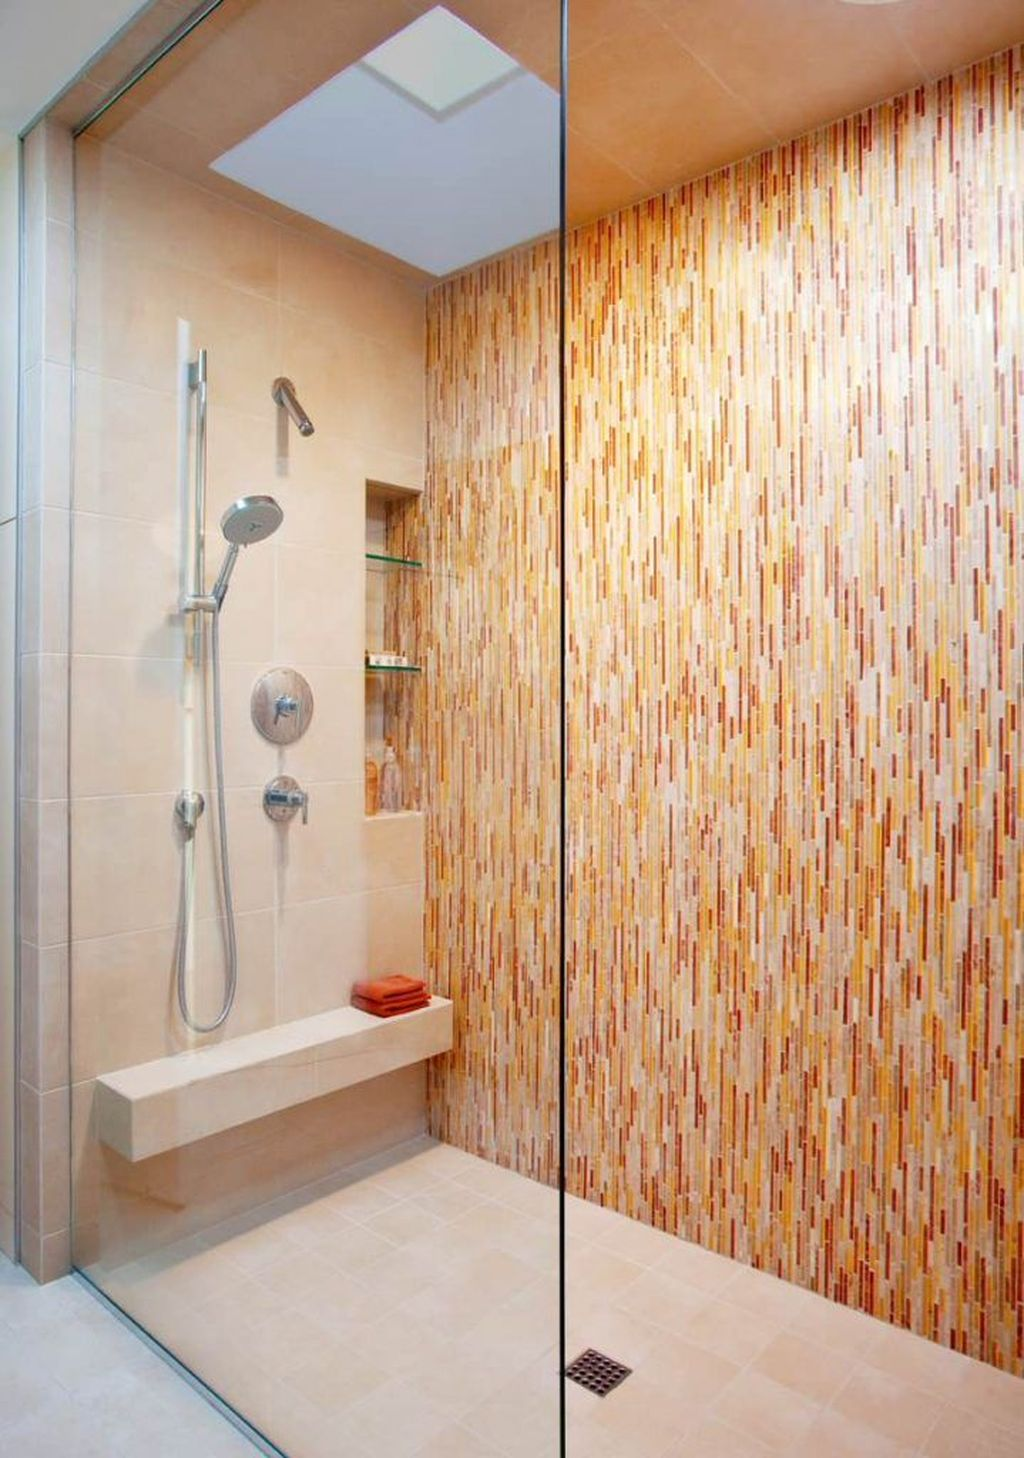 The Best Stone Tile Bathroom Ideas To Decorate Your Bathroom 10